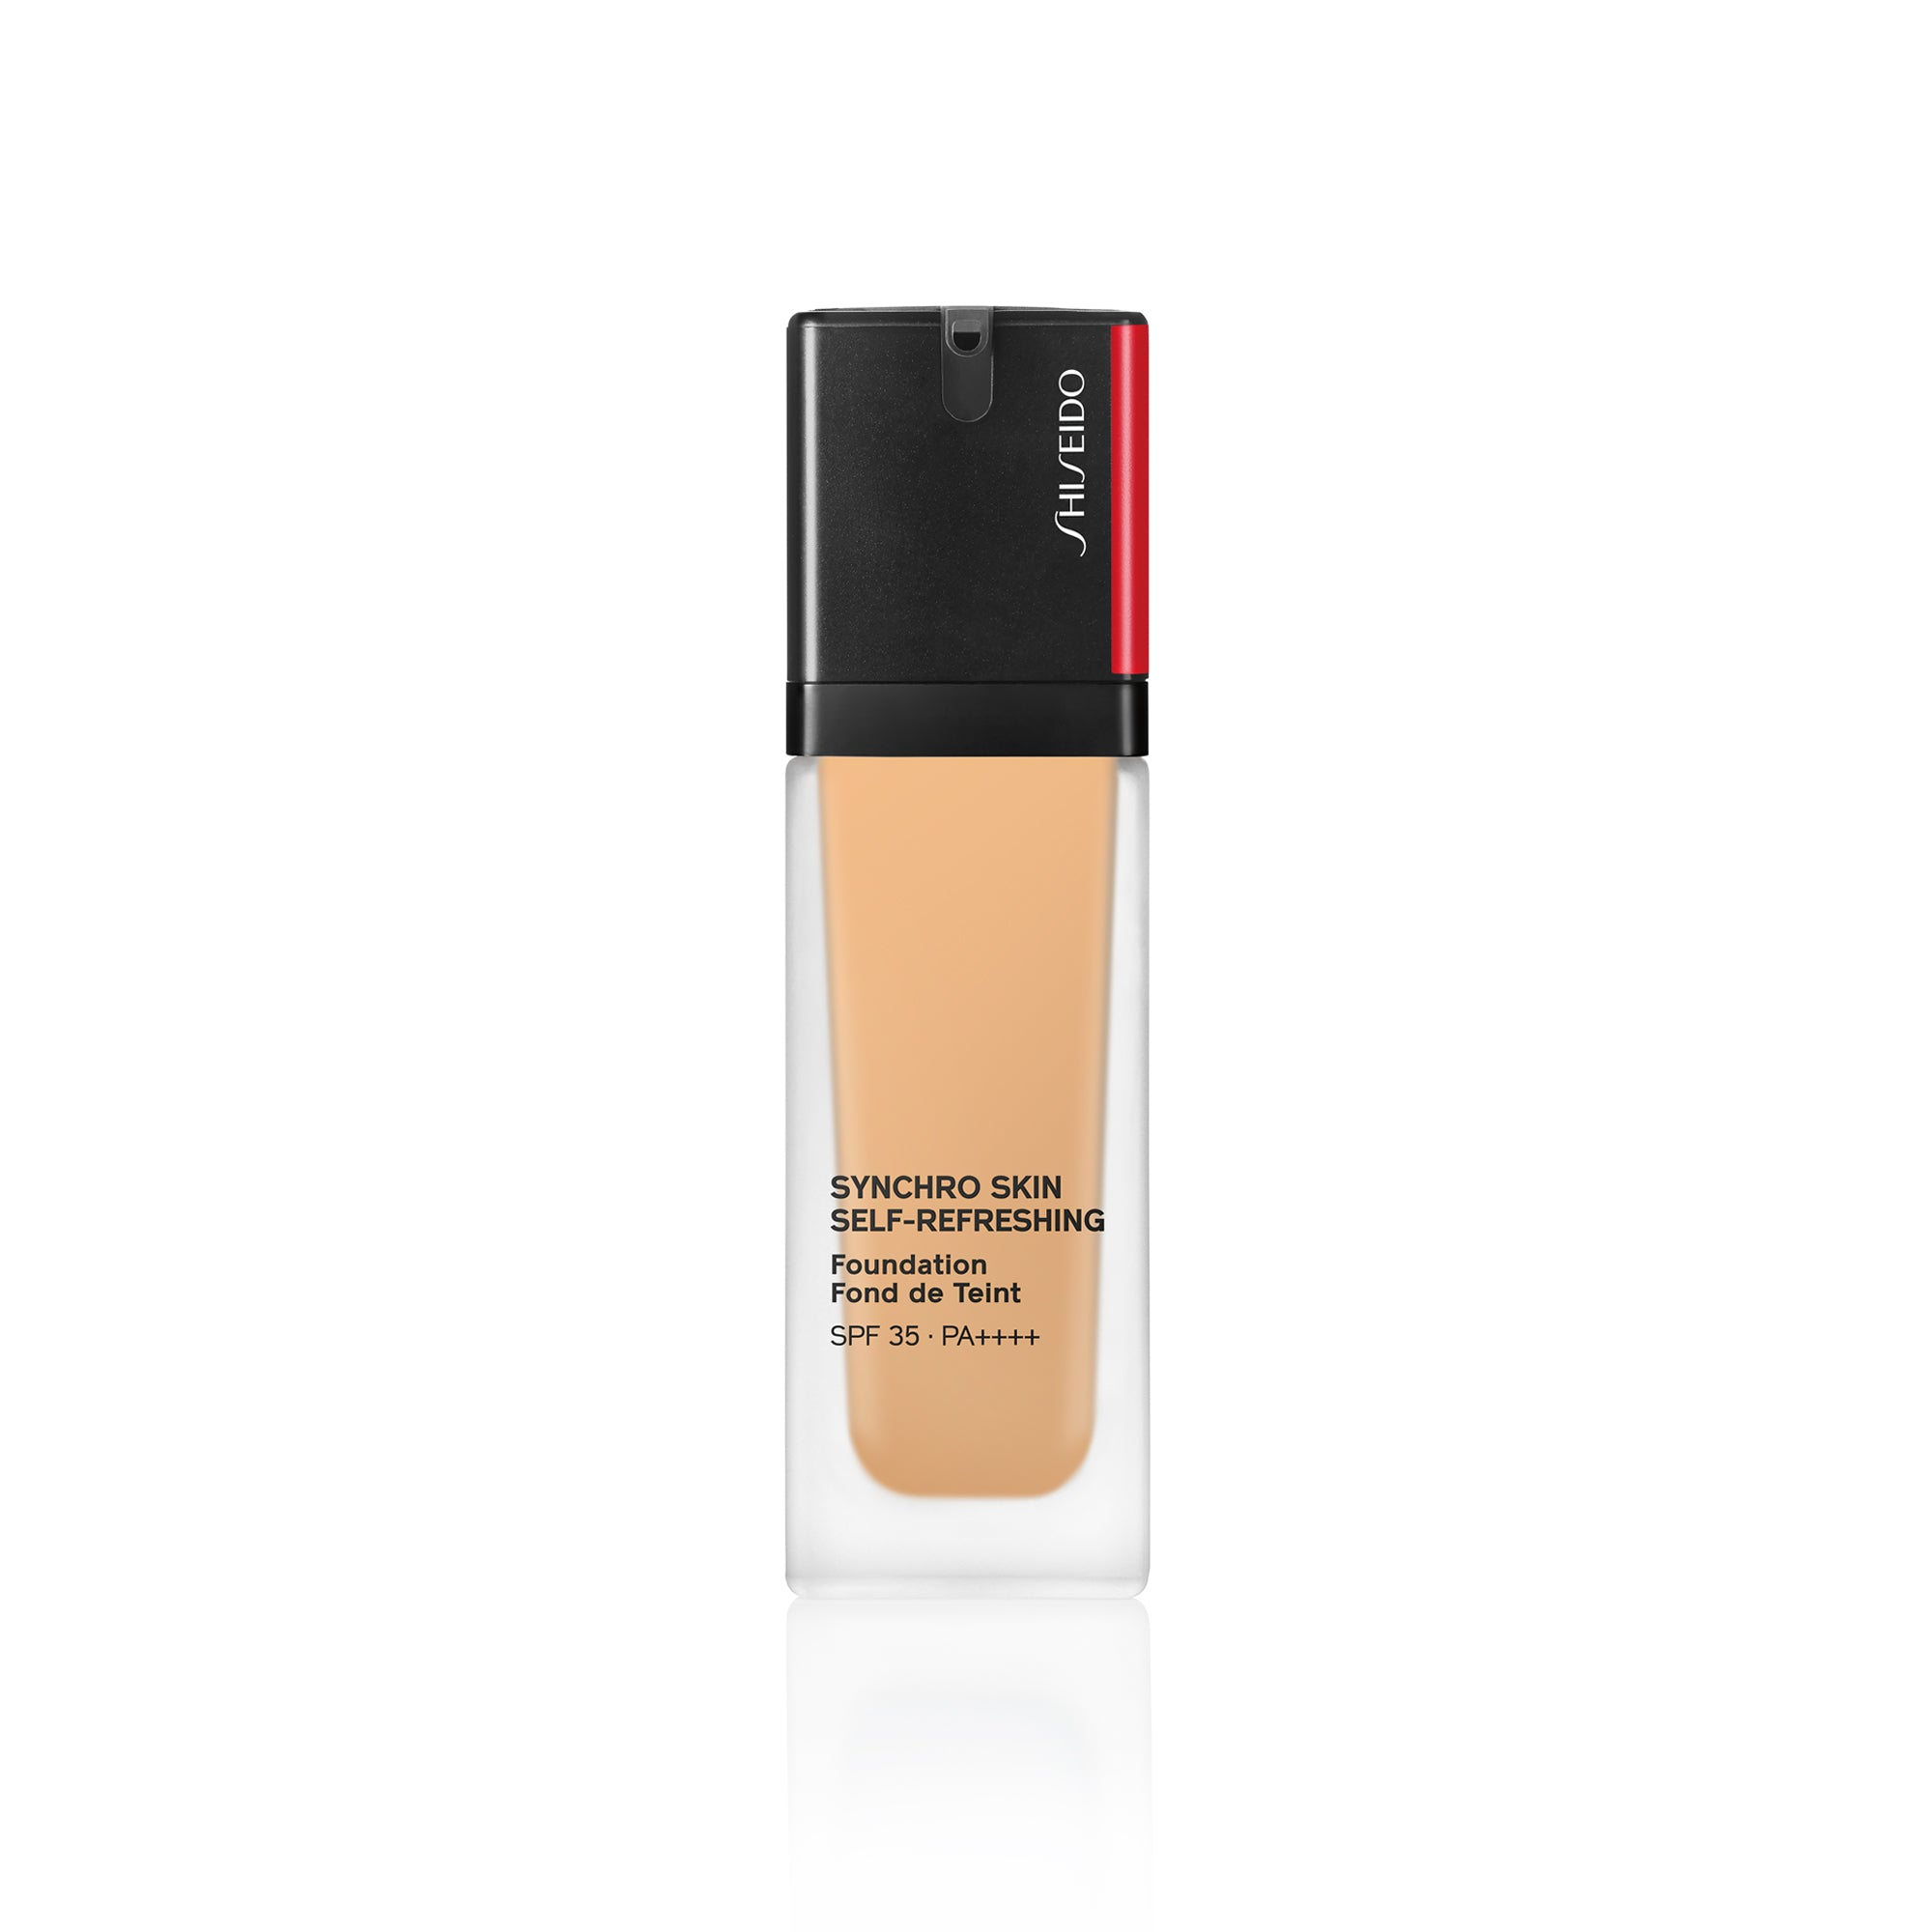 Shiseido Makeup Synchro Skin Self-Refreshing Foundation 30ml, 350 Mapl